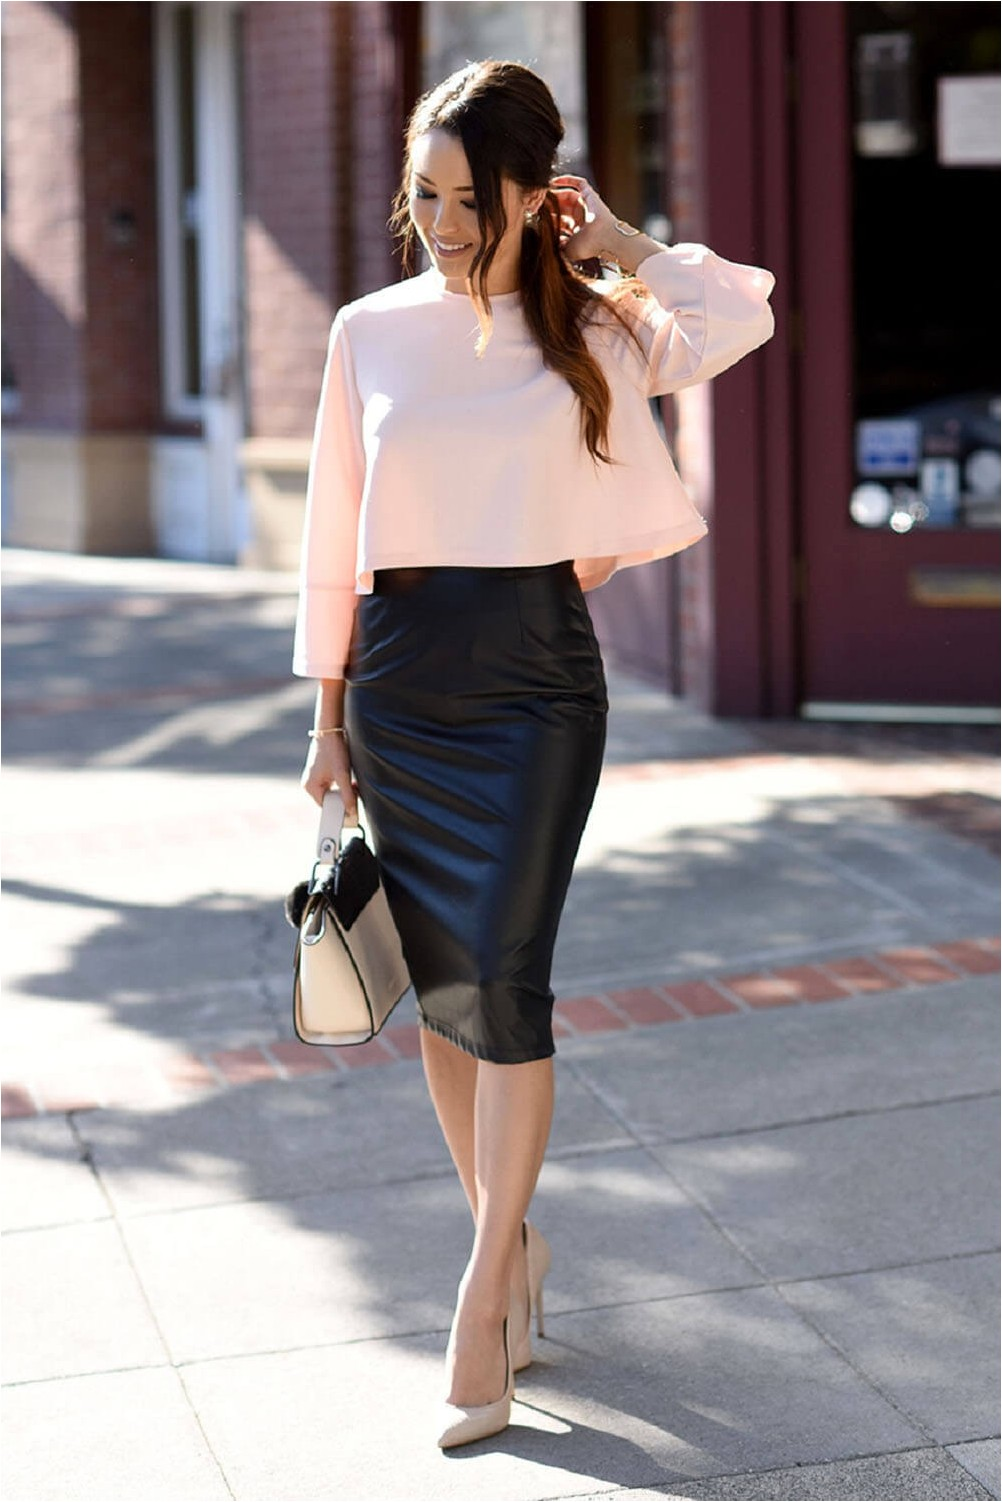 Business style with pencil skirt.